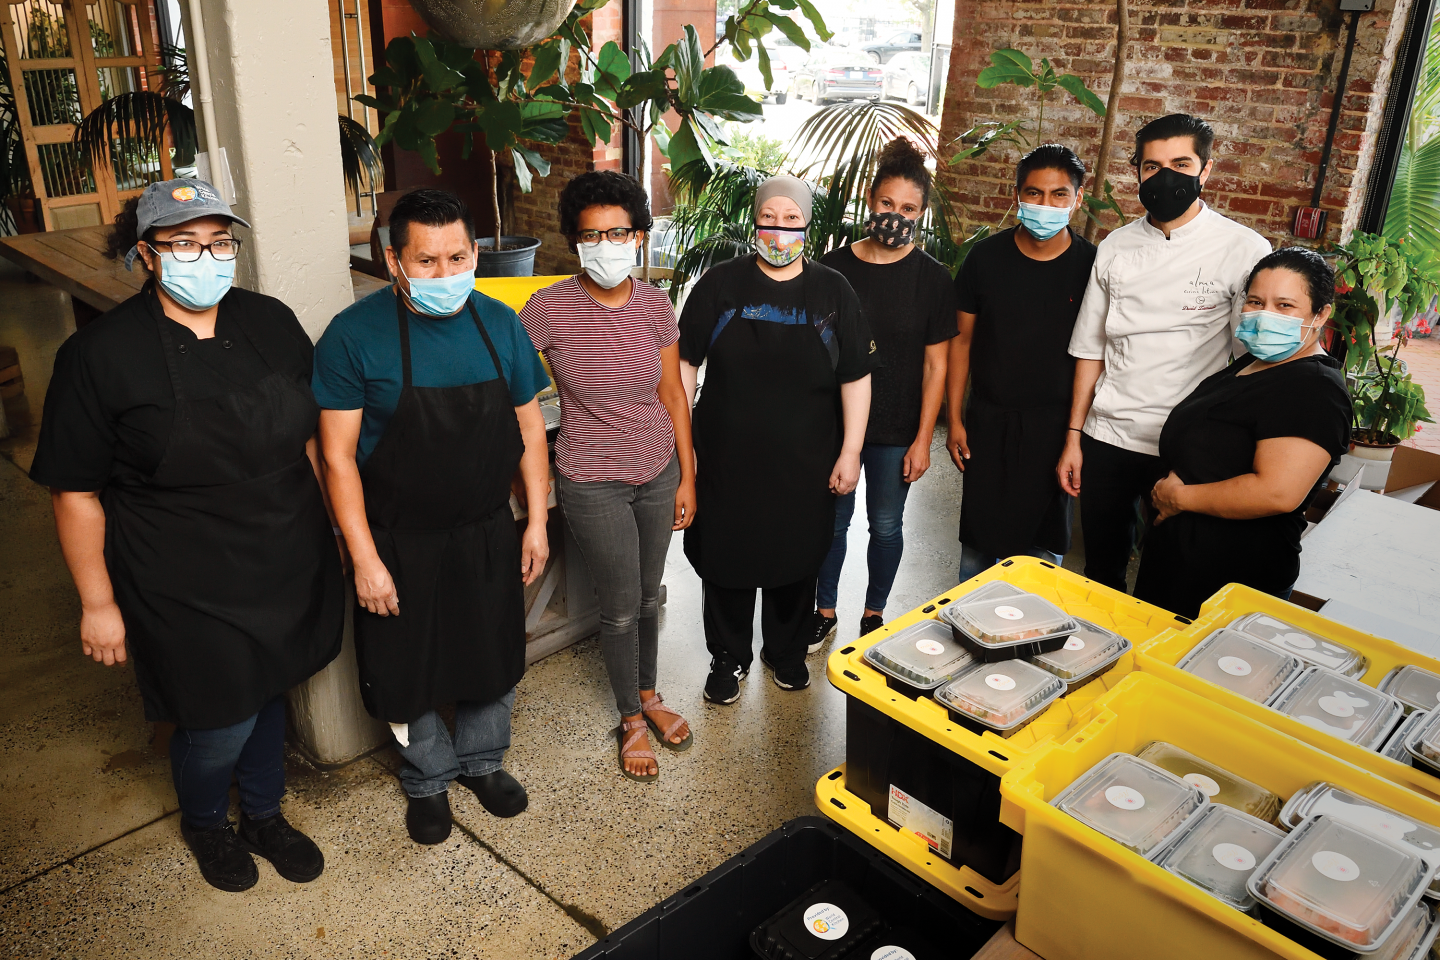 A group of masked people in a kitchen